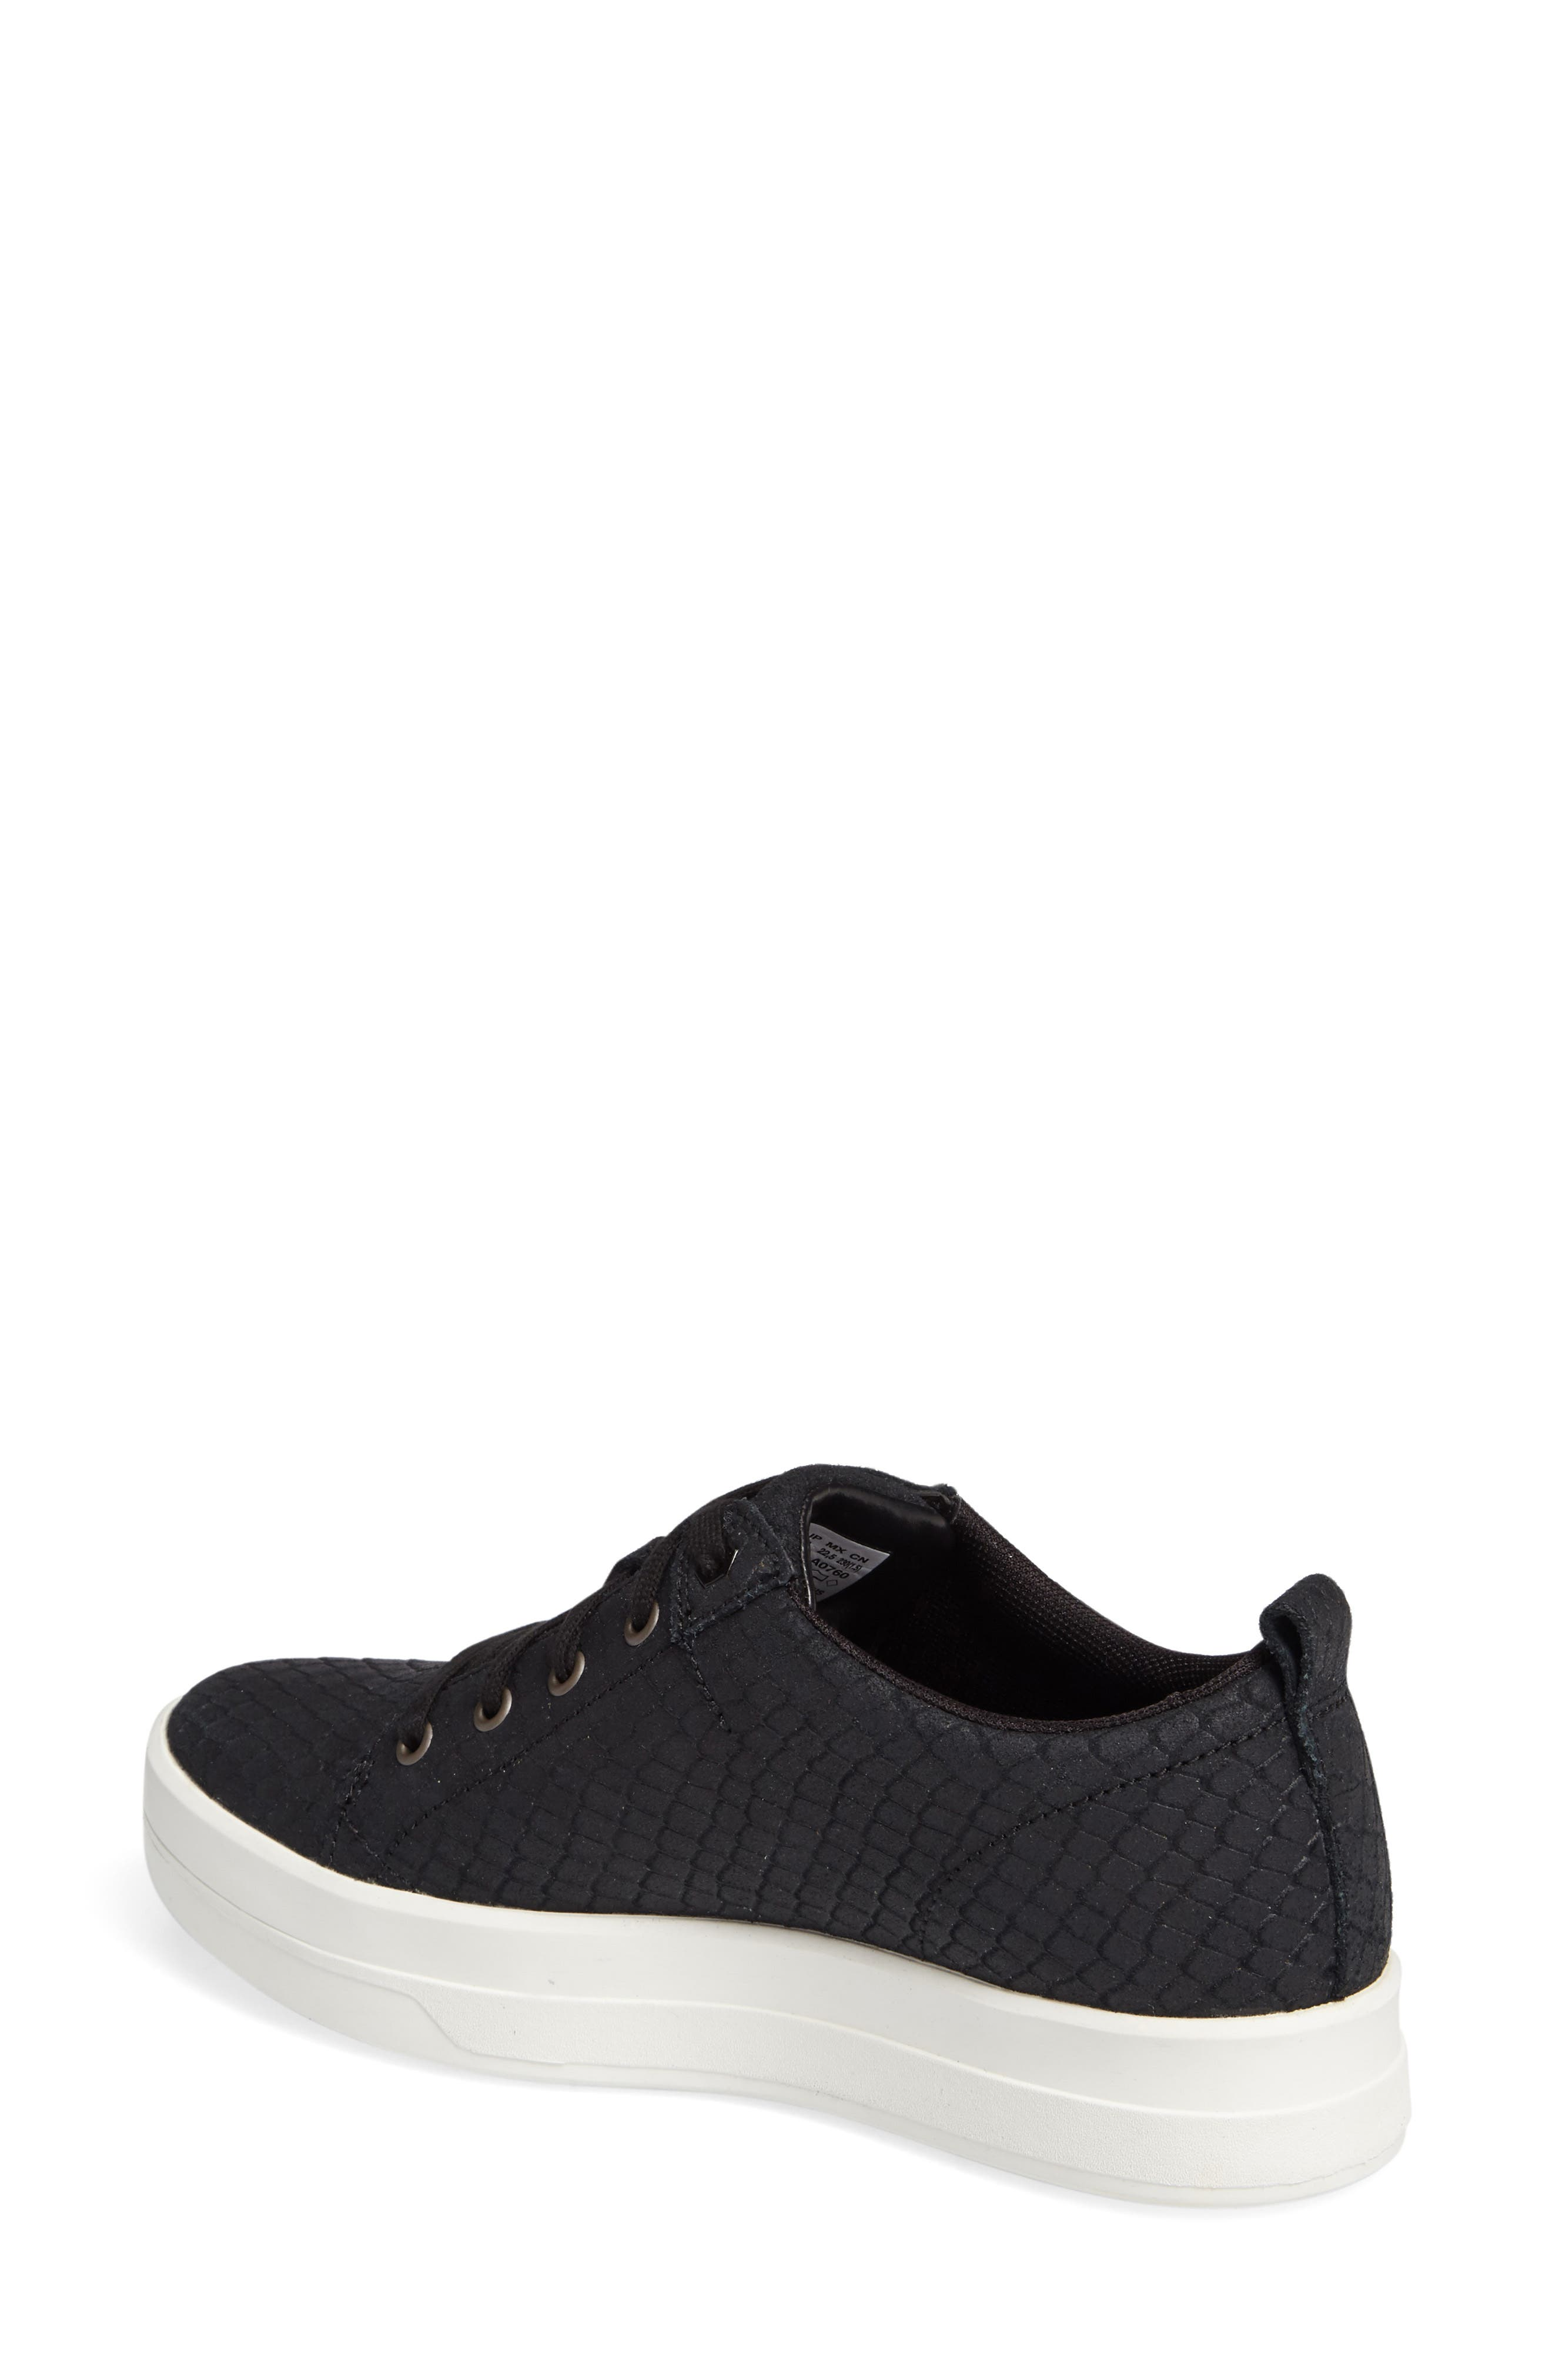 Mayliss Oxford Sneaker,                             Alternate thumbnail 2, color,                             001